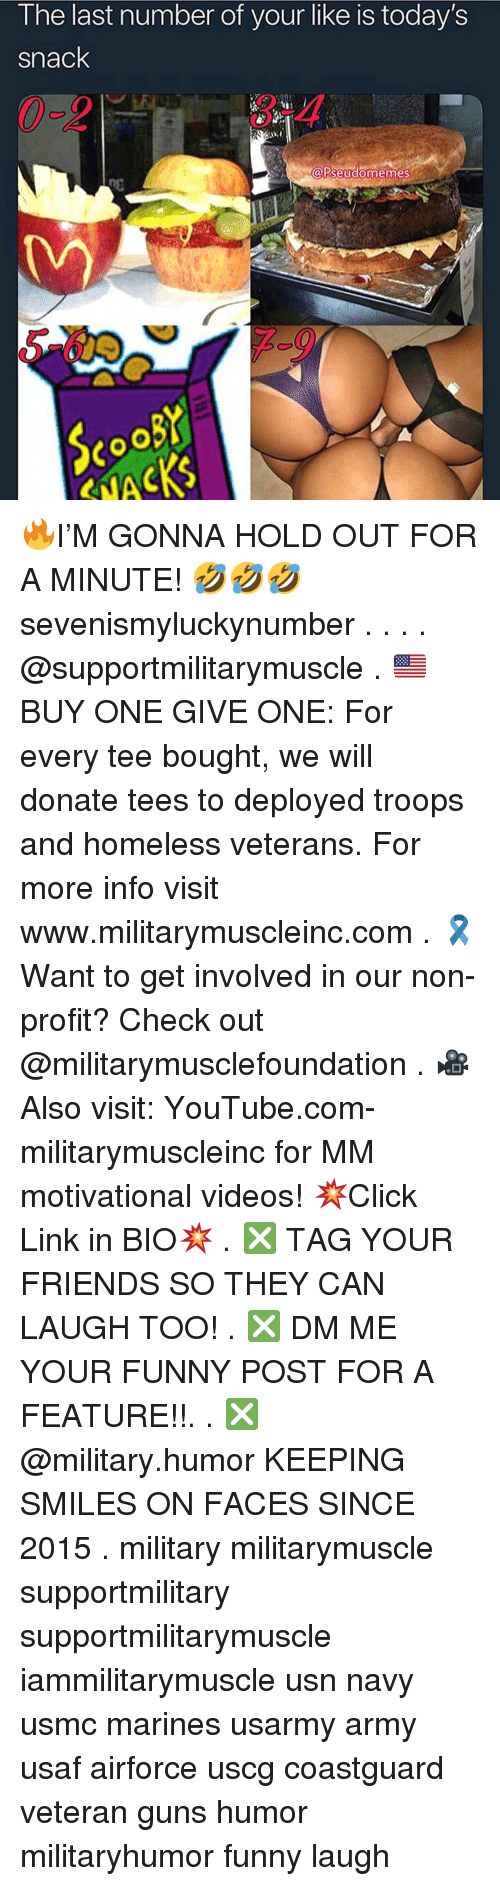 funny post: I he last number of your like is today's  snack  3-4  A  PseudomemeS 🔥I'M GONNA HOLD OUT FOR A MINUTE! 🤣🤣🤣 sevenismyluckynumber . . . . @supportmilitarymuscle . 🇺🇸BUY ONE GIVE ONE: For every tee bought, we will donate tees to deployed troops and homeless veterans. For more info visit www.militarymuscleinc.com . 🎗Want to get involved in our non-profit? Check out @militarymusclefoundation . 🎥Also visit: YouTube.com-militarymuscleinc for MM motivational videos! 💥Click Link in BIO💥 . ❎ TAG YOUR FRIENDS SO THEY CAN LAUGH TOO! . ❎ DM ME YOUR FUNNY POST FOR A FEATURE!!. . ❎ @military.humor KEEPING SMILES ON FACES SINCE 2015 . military militarymuscle supportmilitary supportmilitarymuscle iammilitarymuscle usn navy usmc marines usarmy army usaf airforce uscg coastguard veteran guns humor militaryhumor funny laugh